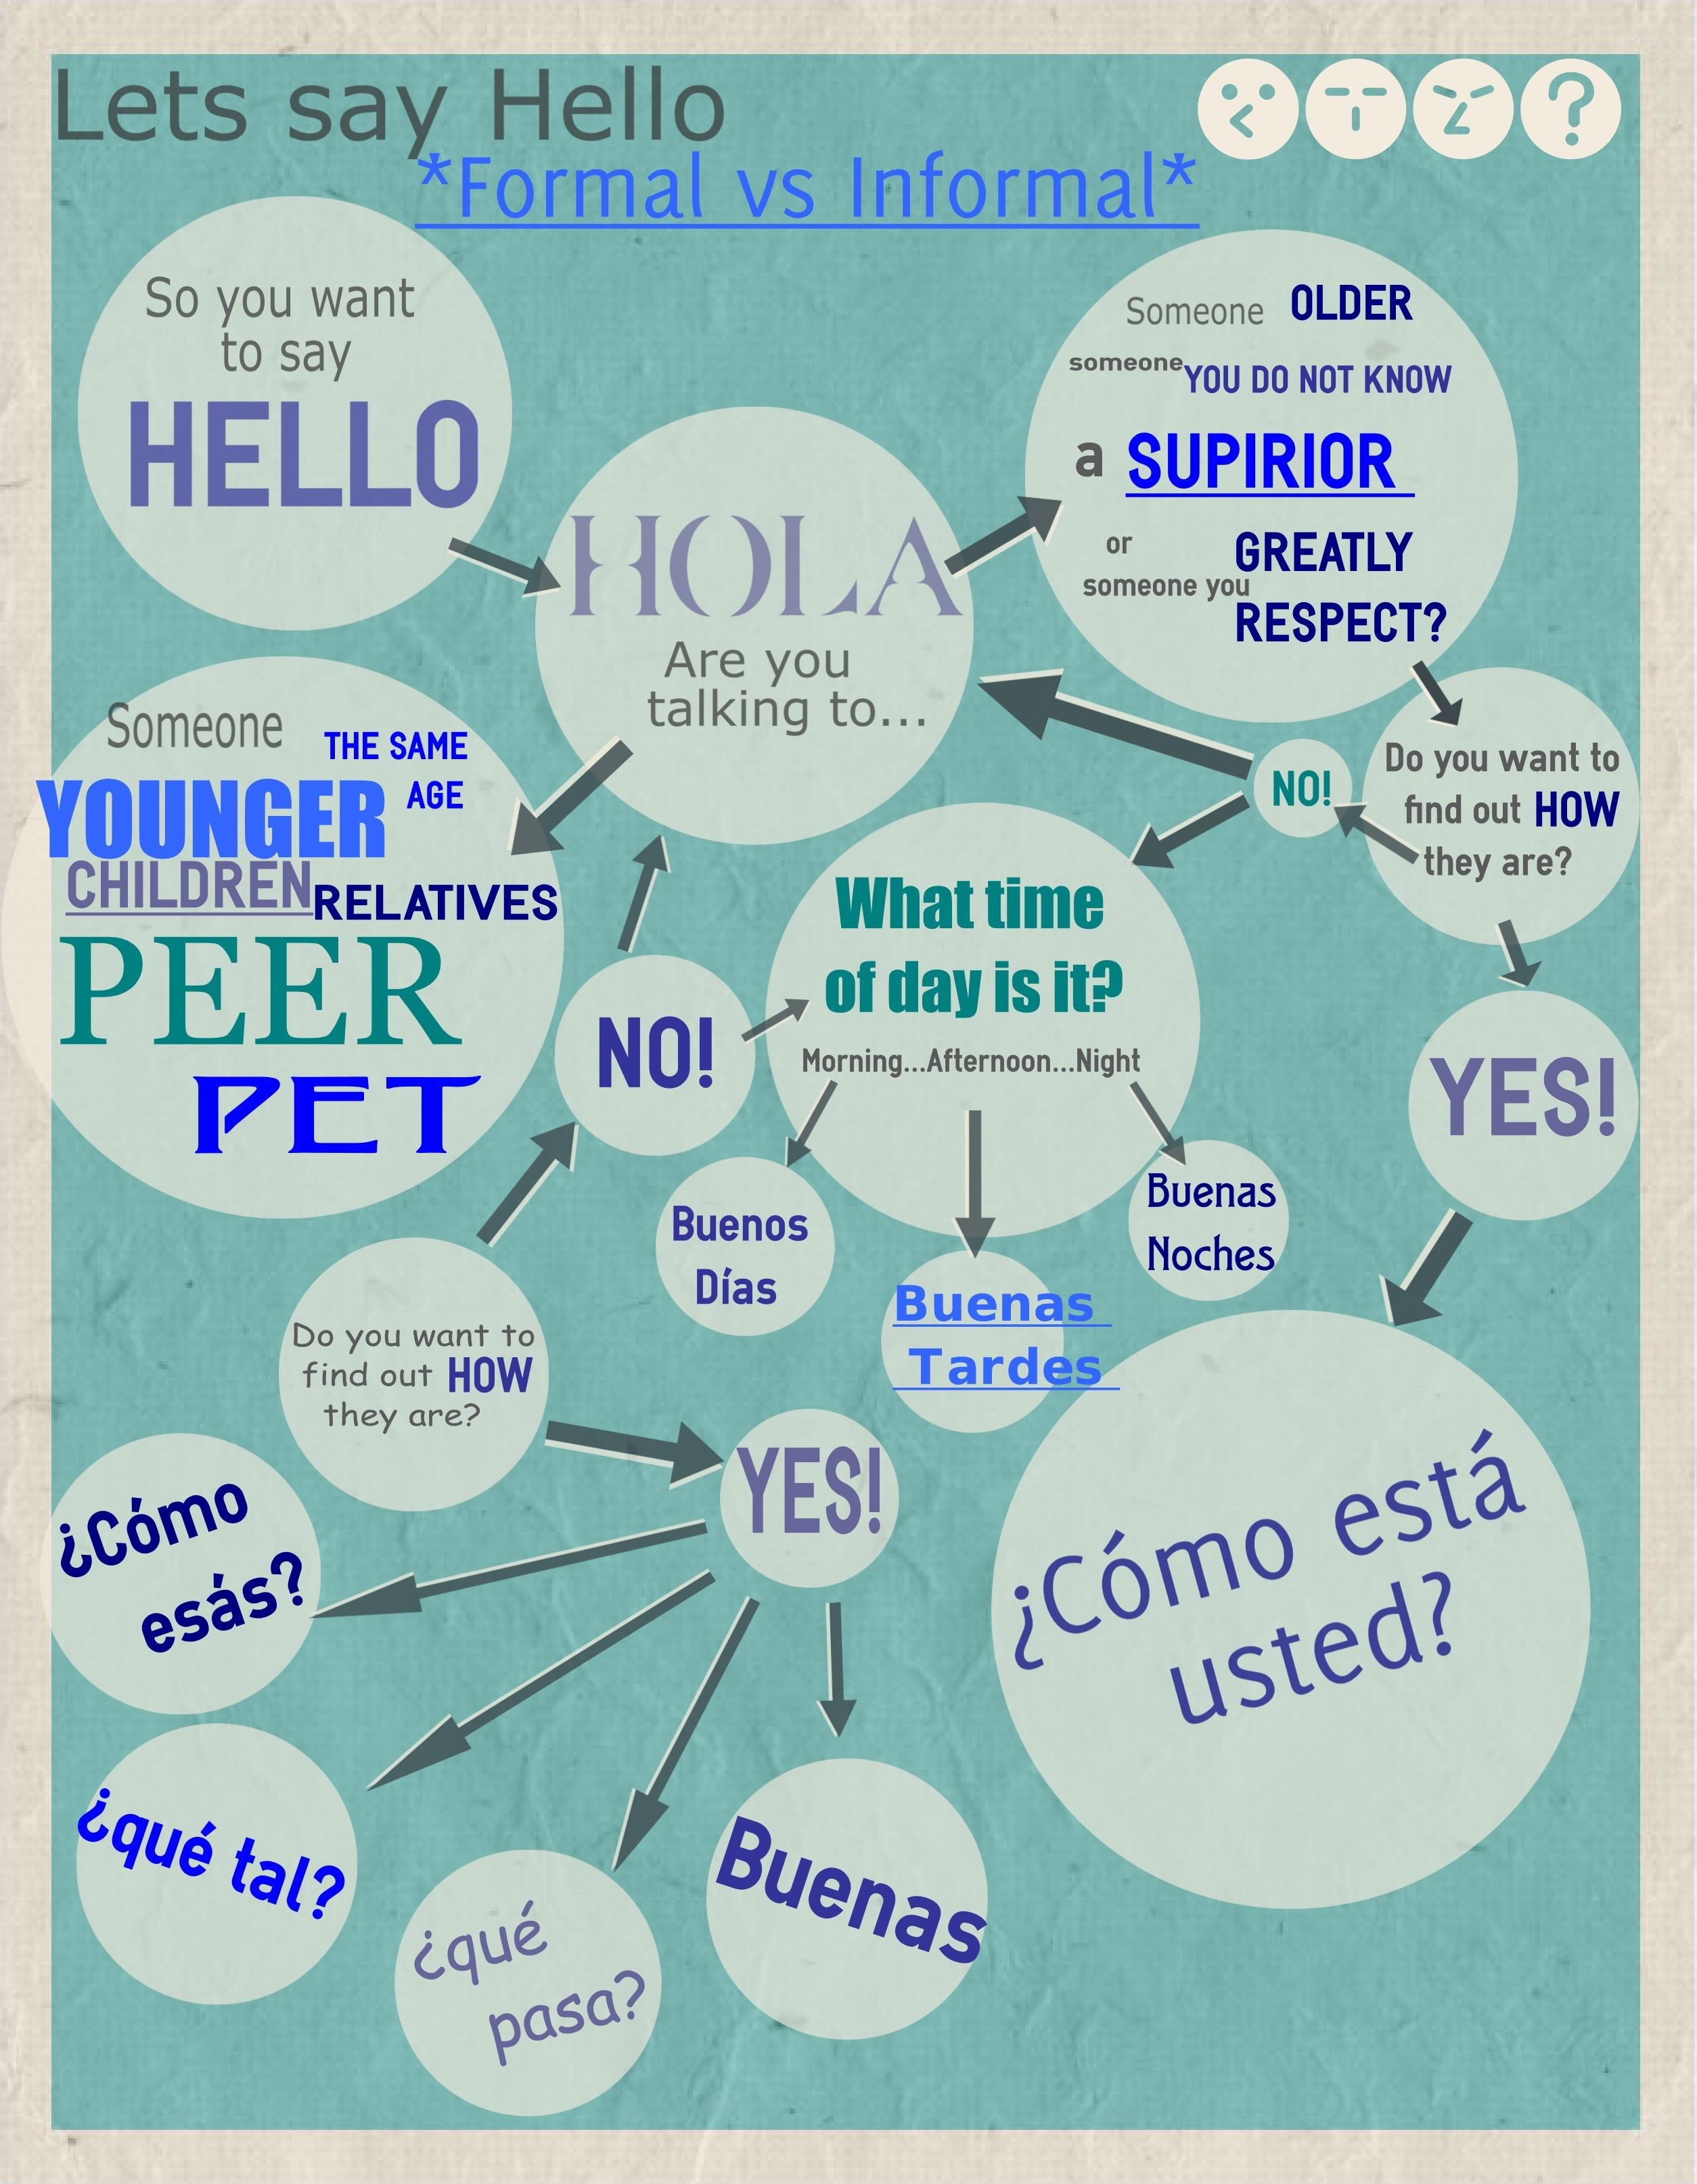 Spanish Greetings Info Graphic Hola Formal Informal